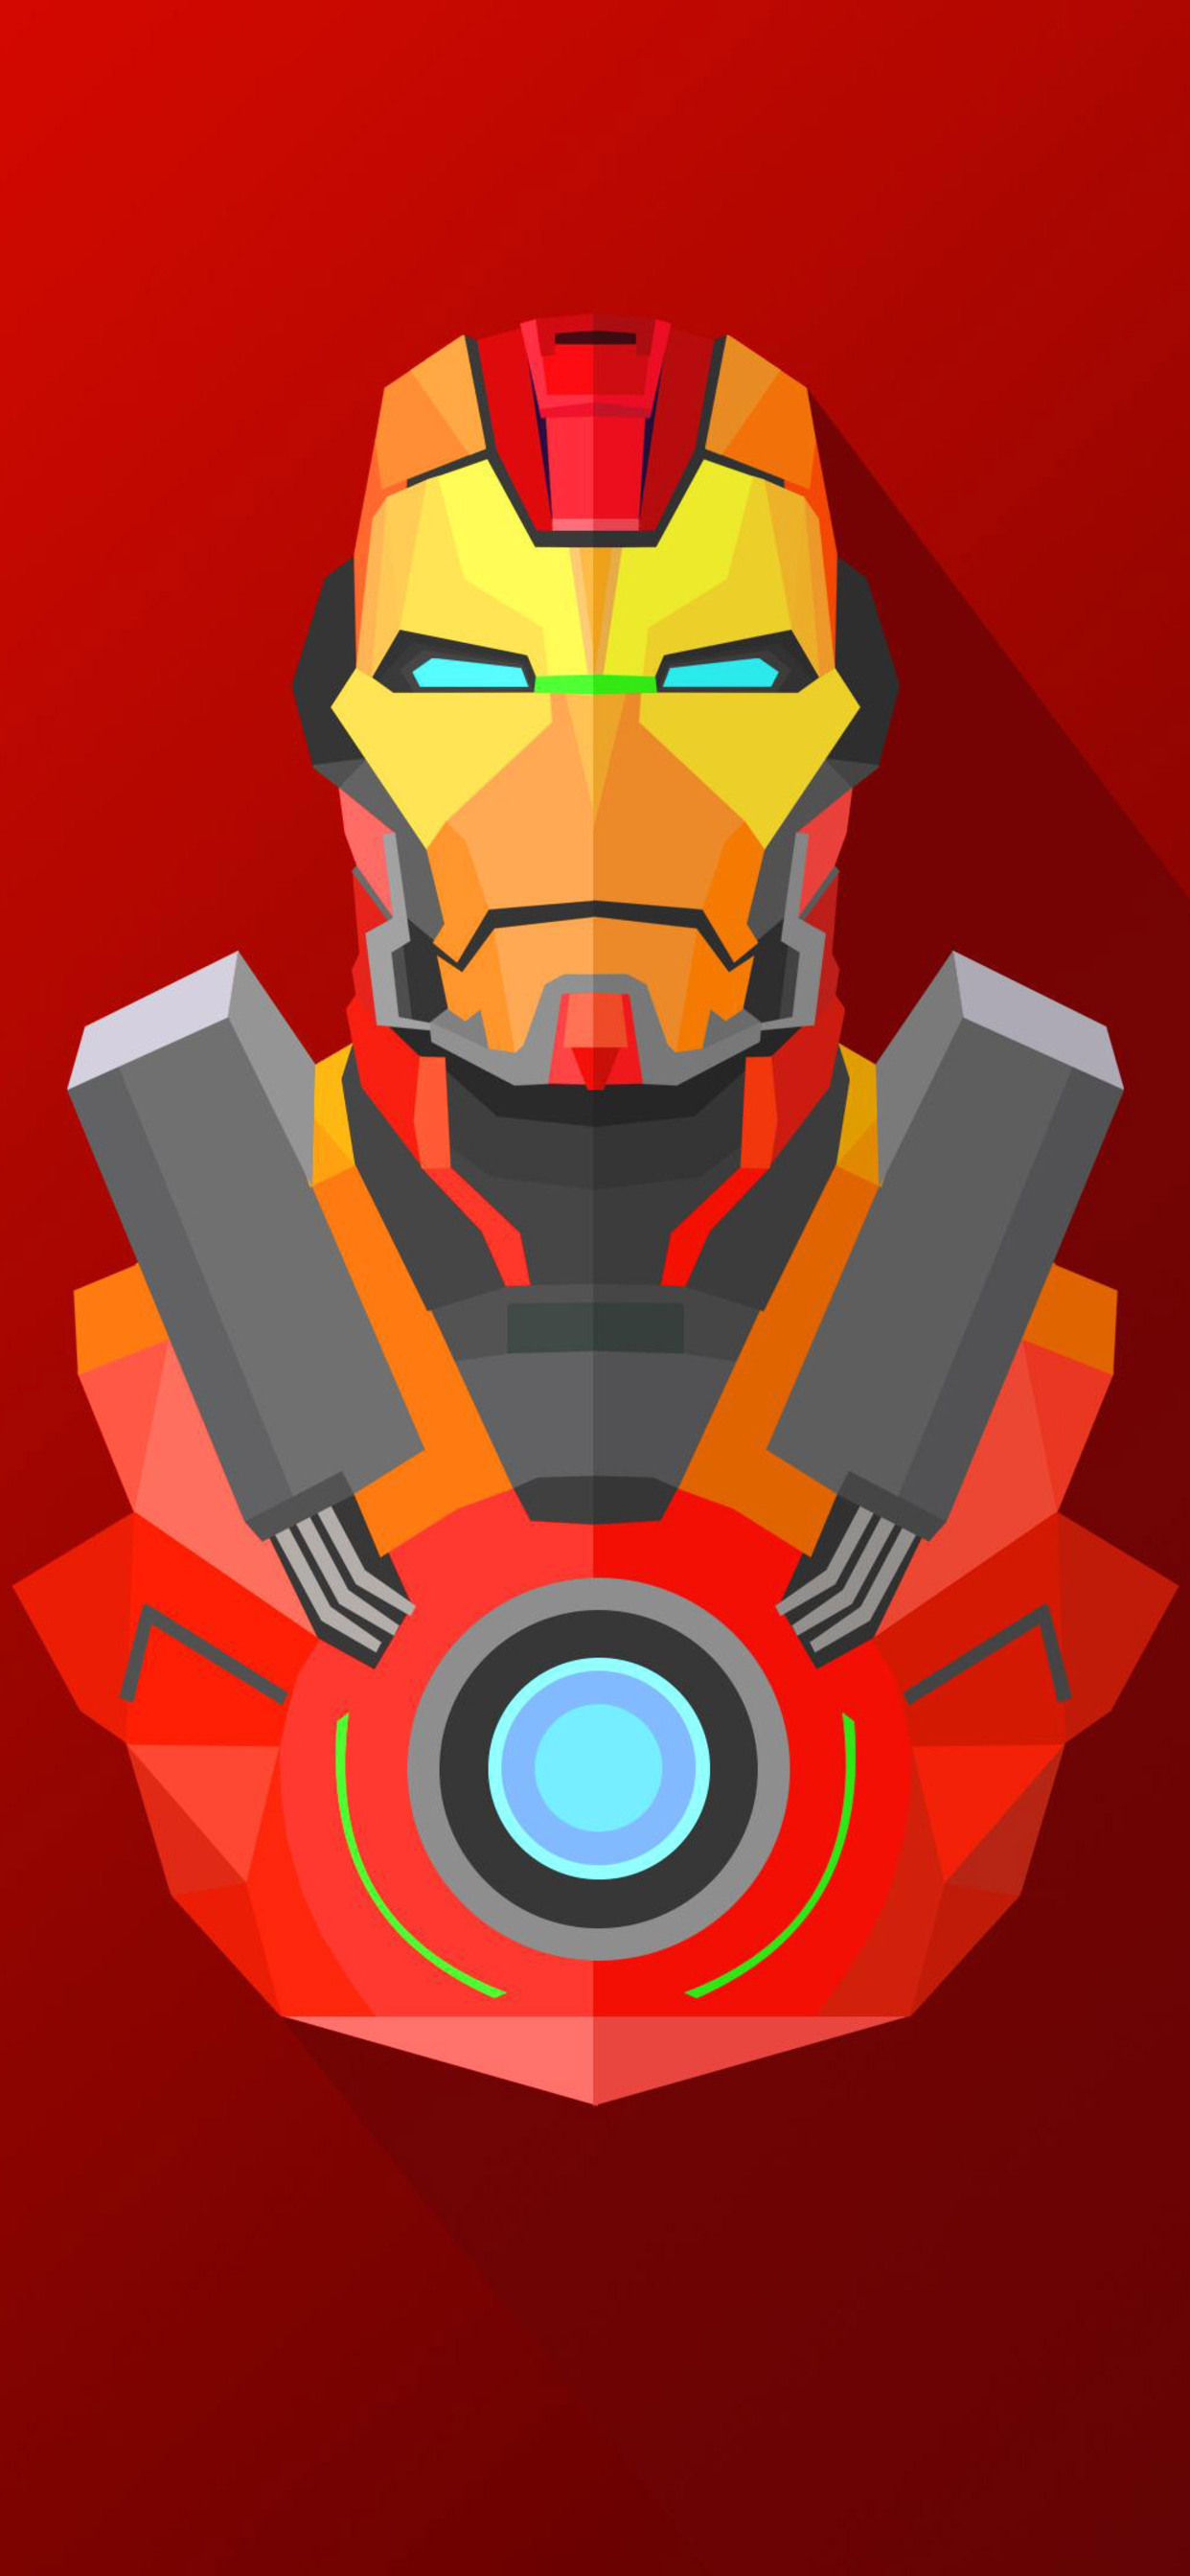 1242x2688 Iron Man Heartbreaker Artwork 4k Iphone Xs Max Hd 4k